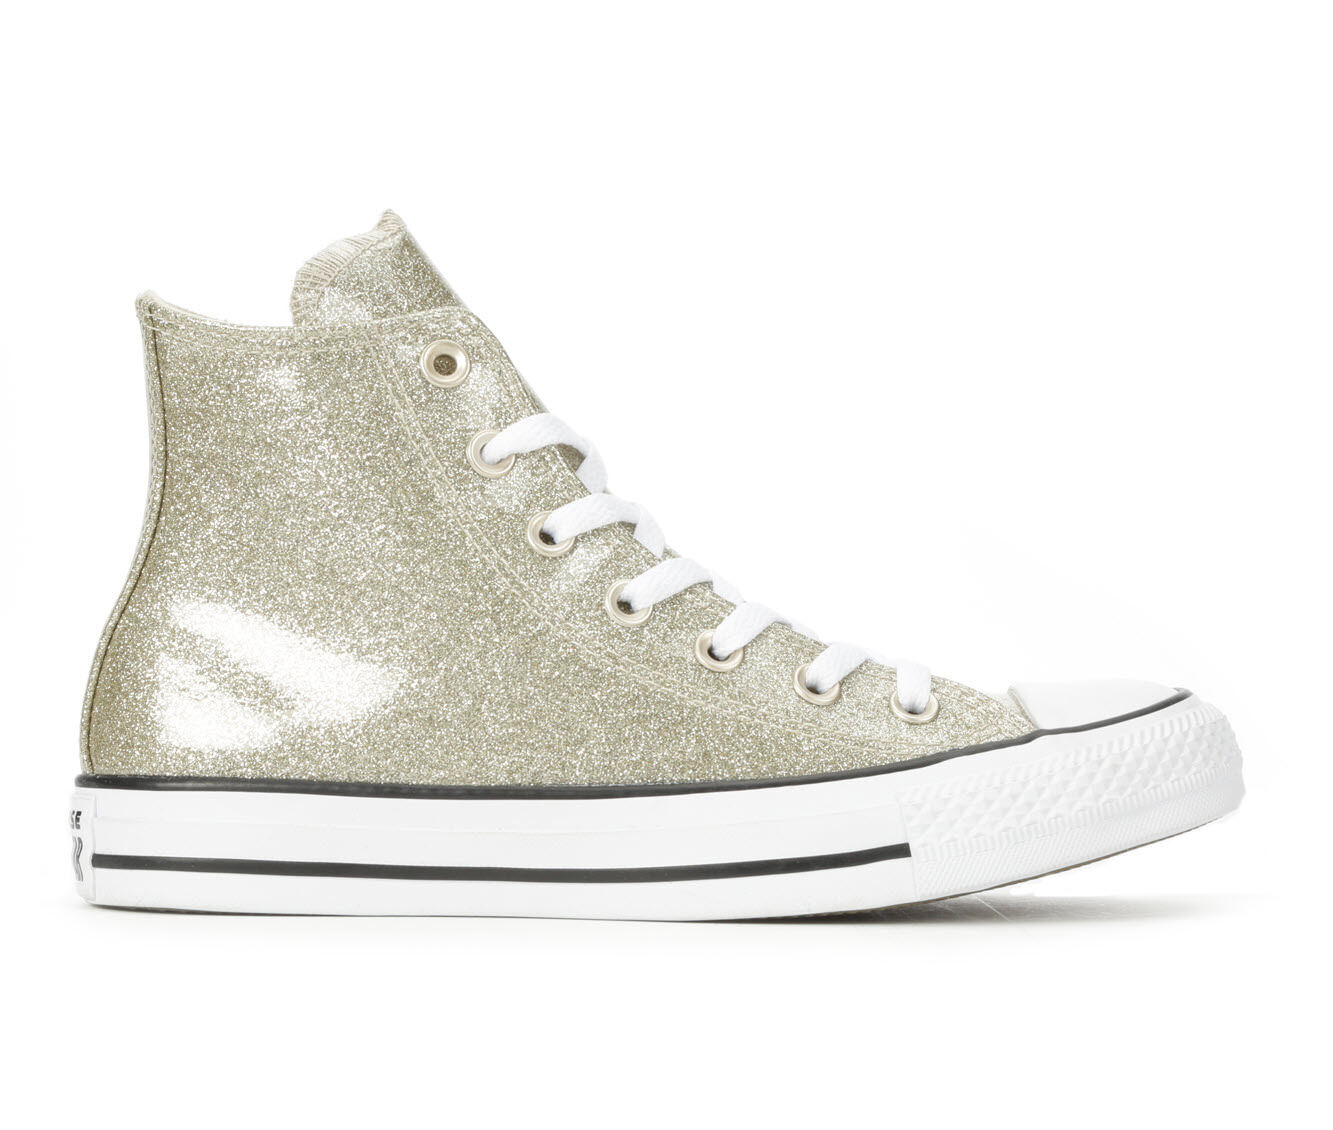 Women's Converse After Party Hi Sneakers Gold/Wht/Blk